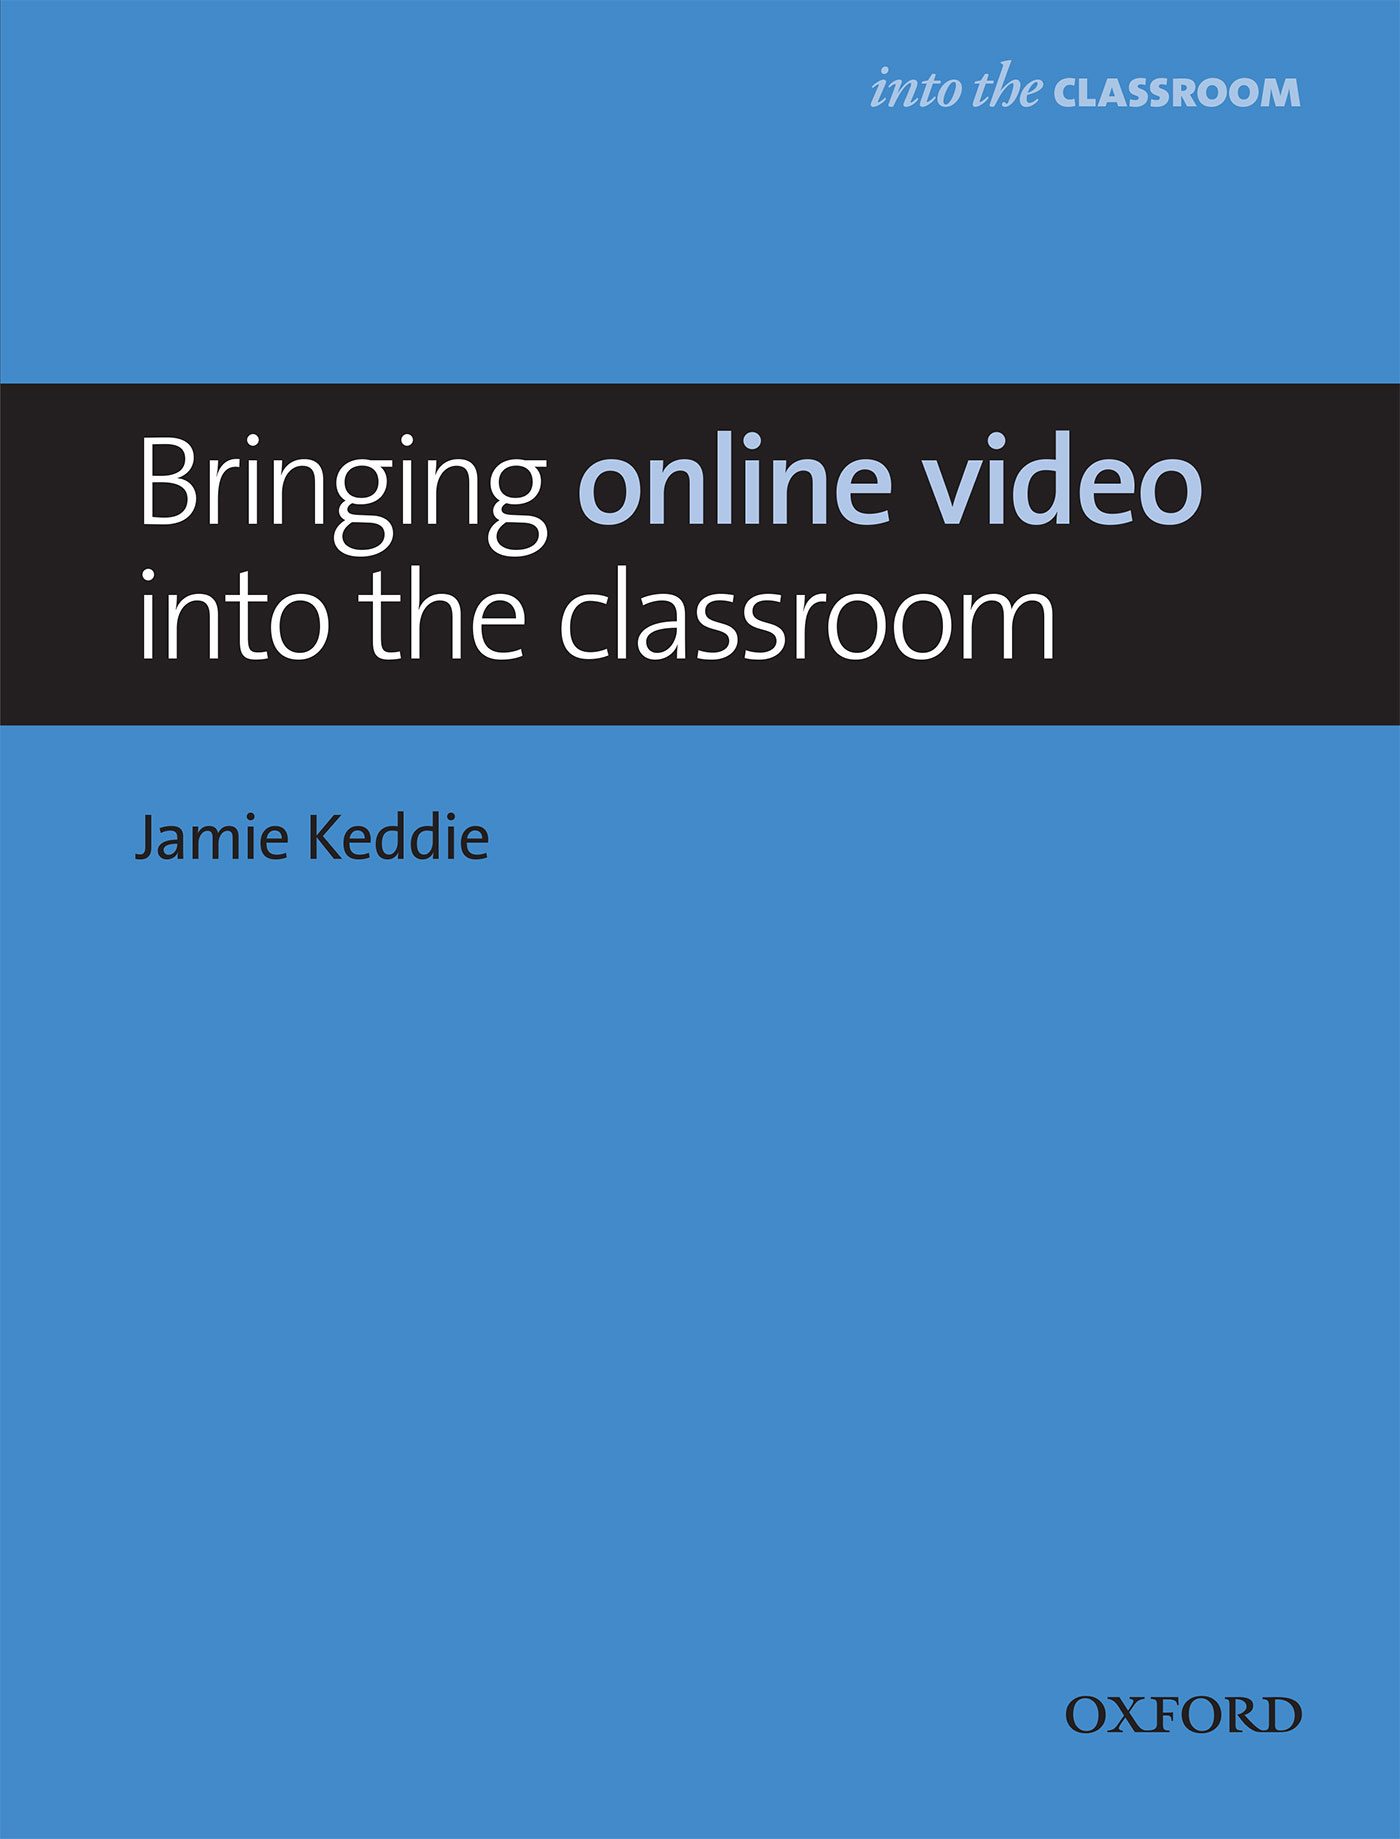 Jamie Keddie Bringing online video into the classroom 8 units apartment video intercom system 7 inch monitor video doorbell door phone kits ir night vision camera for multi units